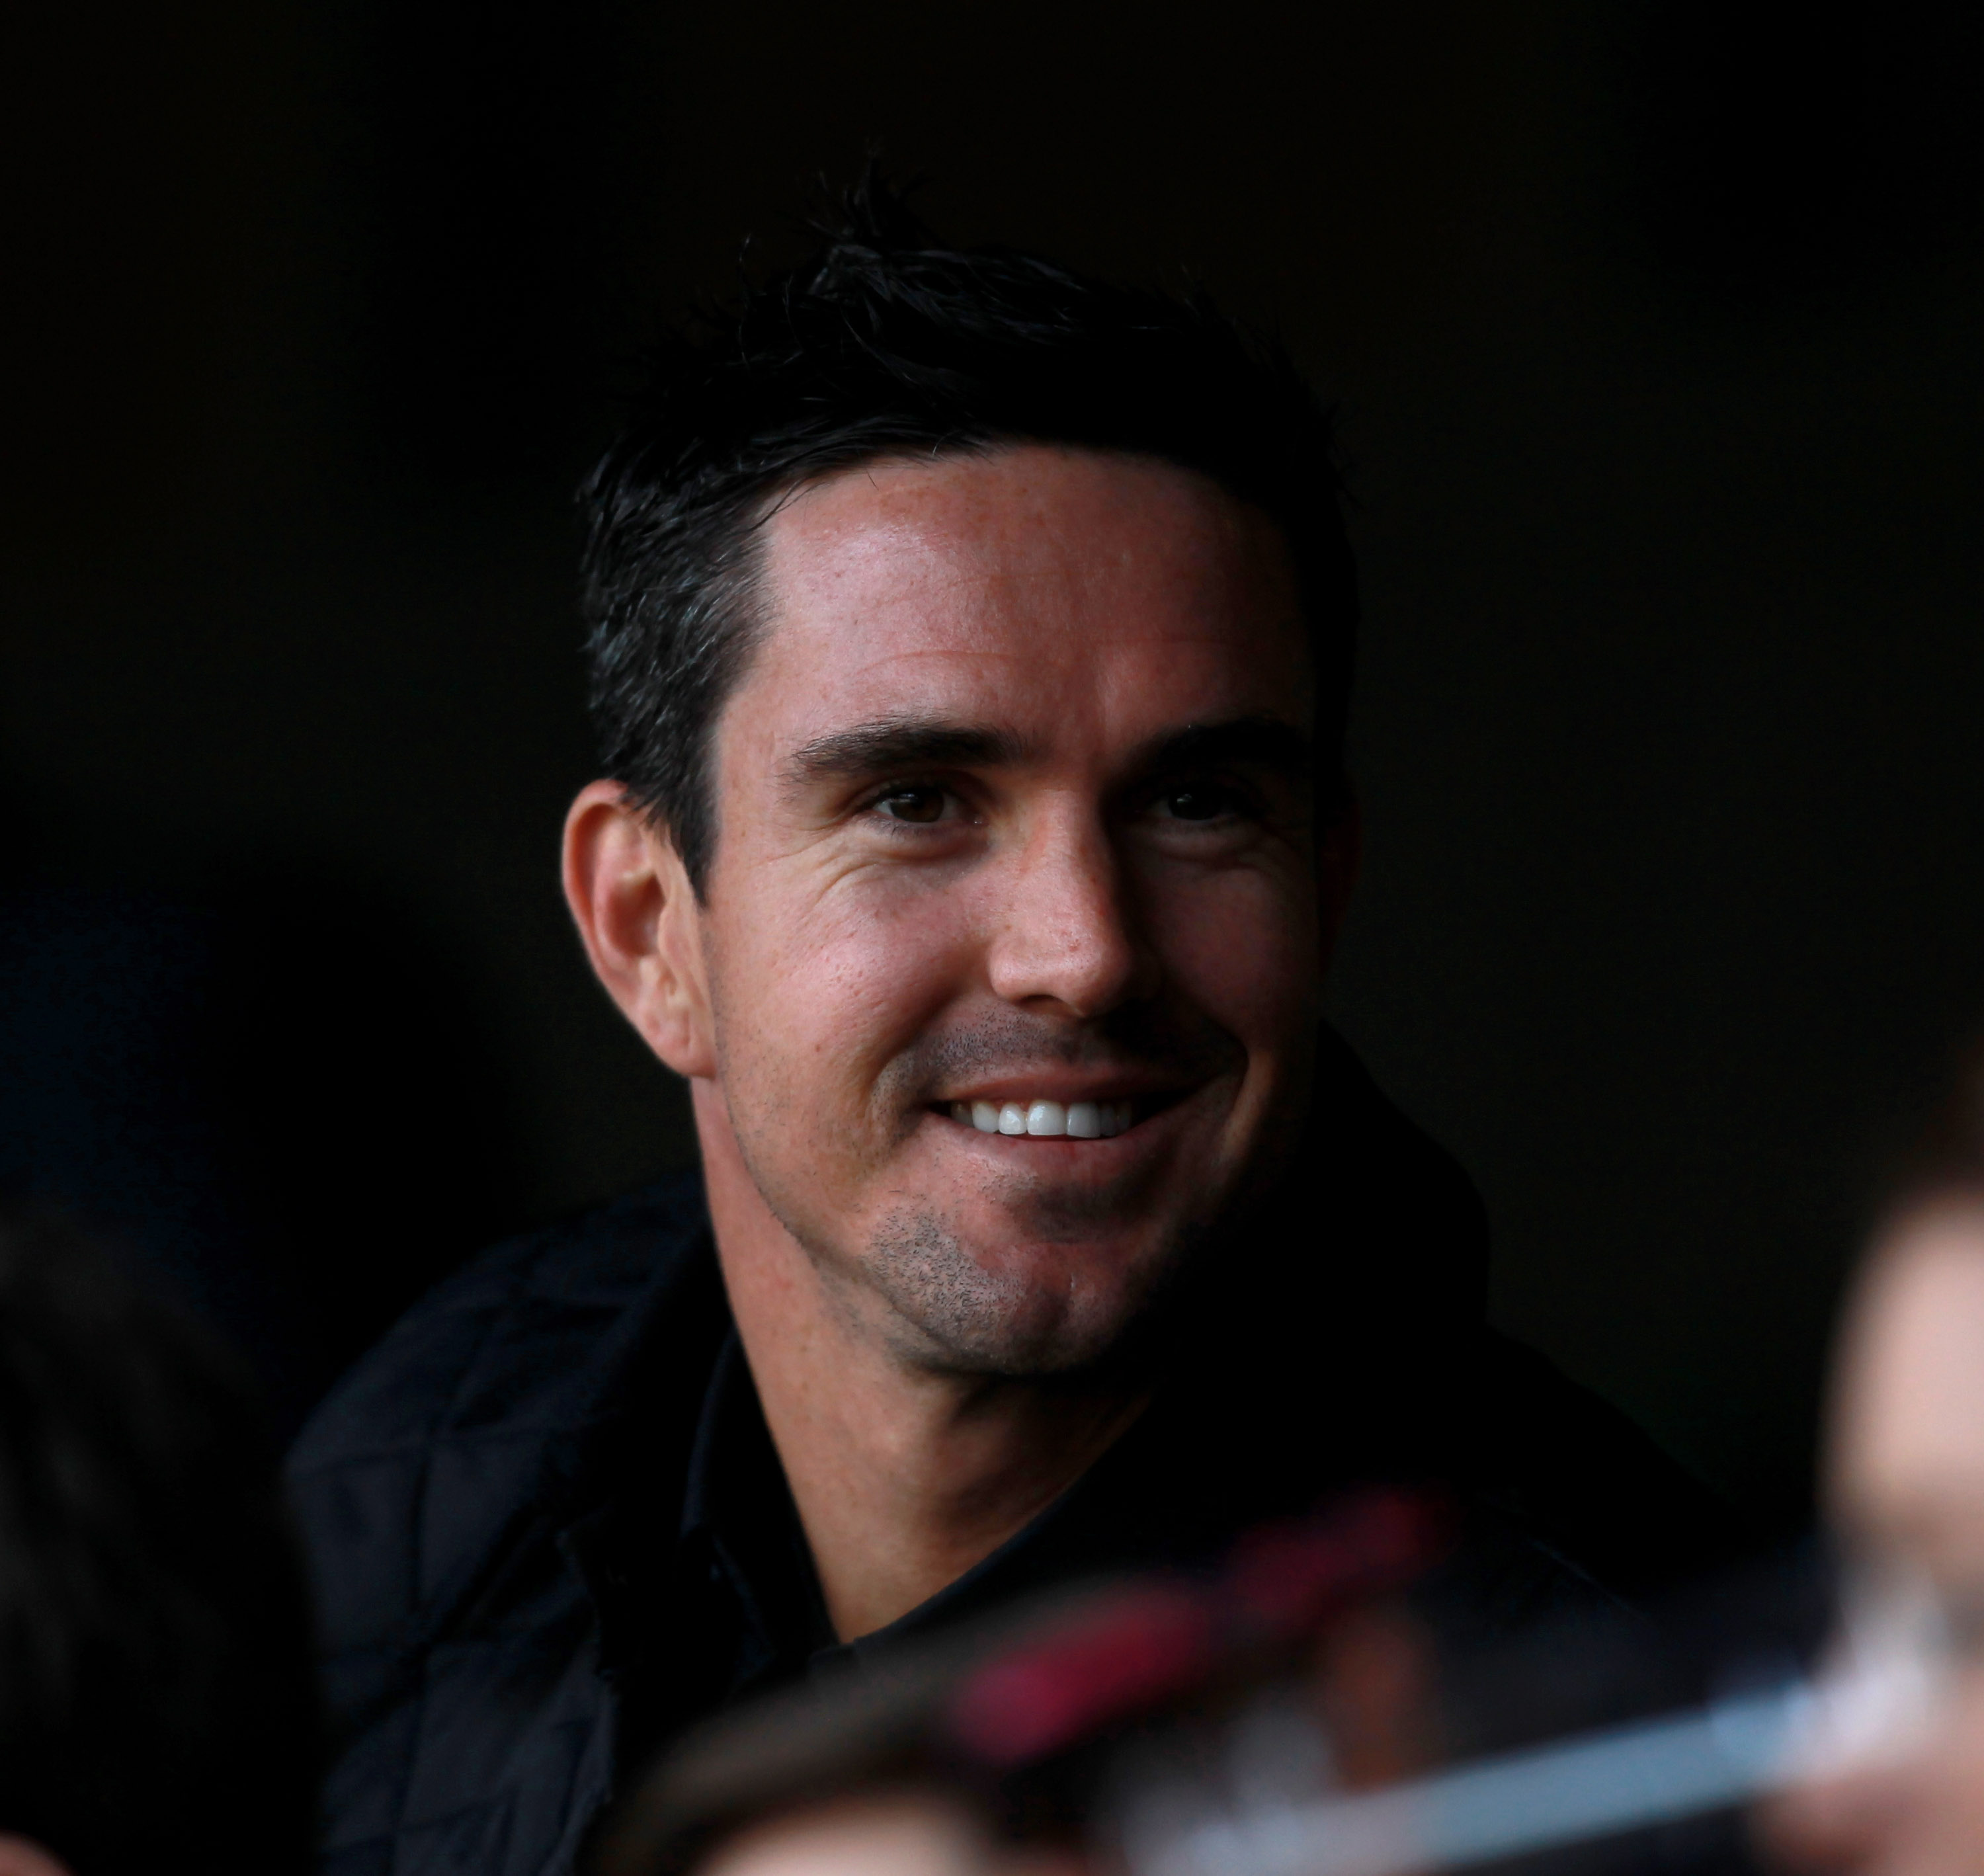 LONDON, ENGLAND - MARCH 27:  Cricketer Kevin Pietersen looks on from the stands ahead of the round six Super Rugby match between the Crusaders and the Sharks at Twickenham Stadium on March 27, 2011 in London, United Kingdom.  (Photo by Warren Little/Getty